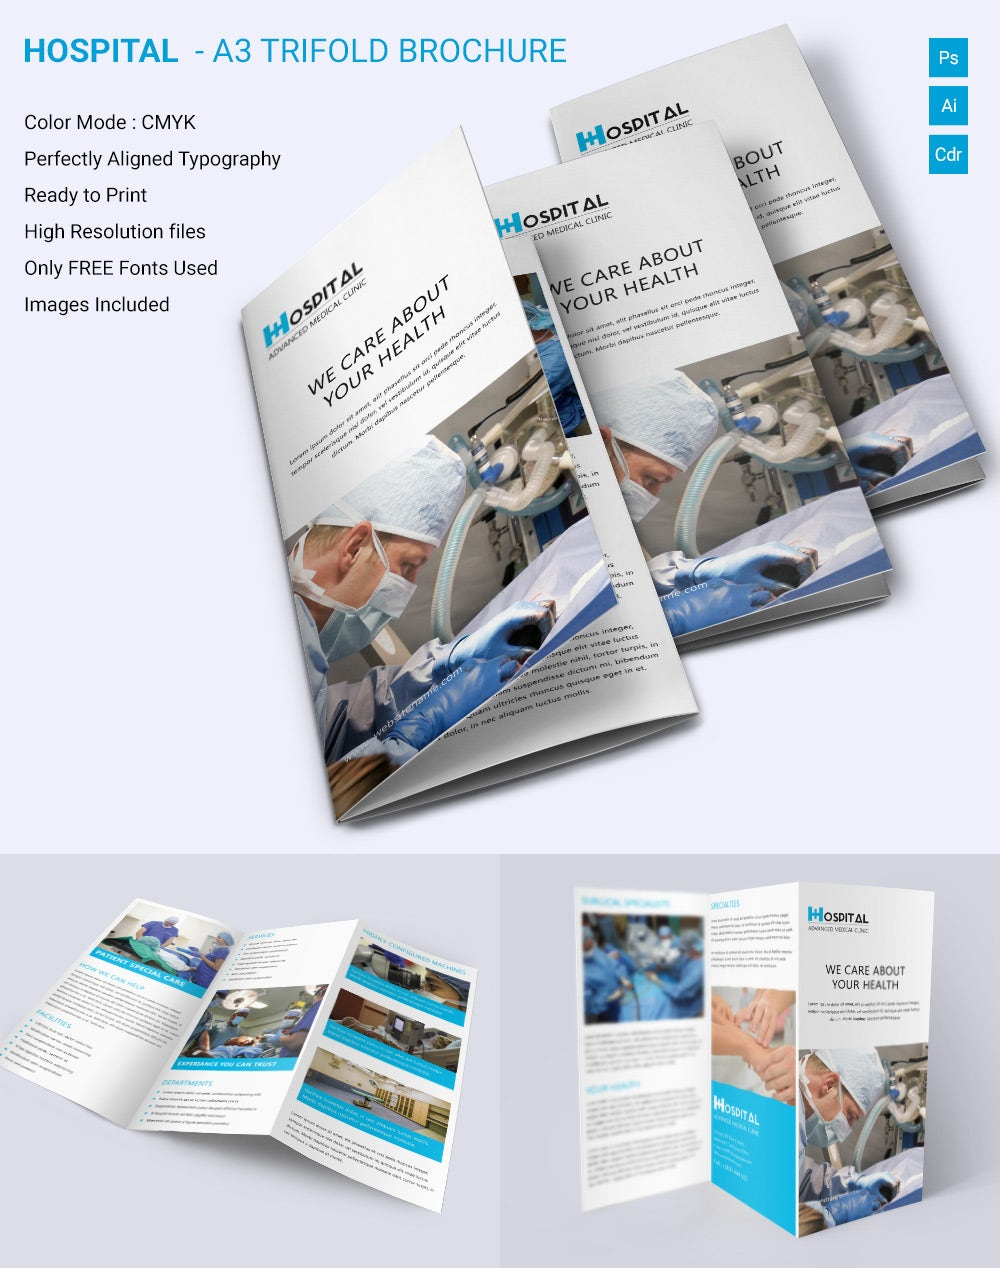 Medical brochure template 39 free psd ai vector eps for Template brochures